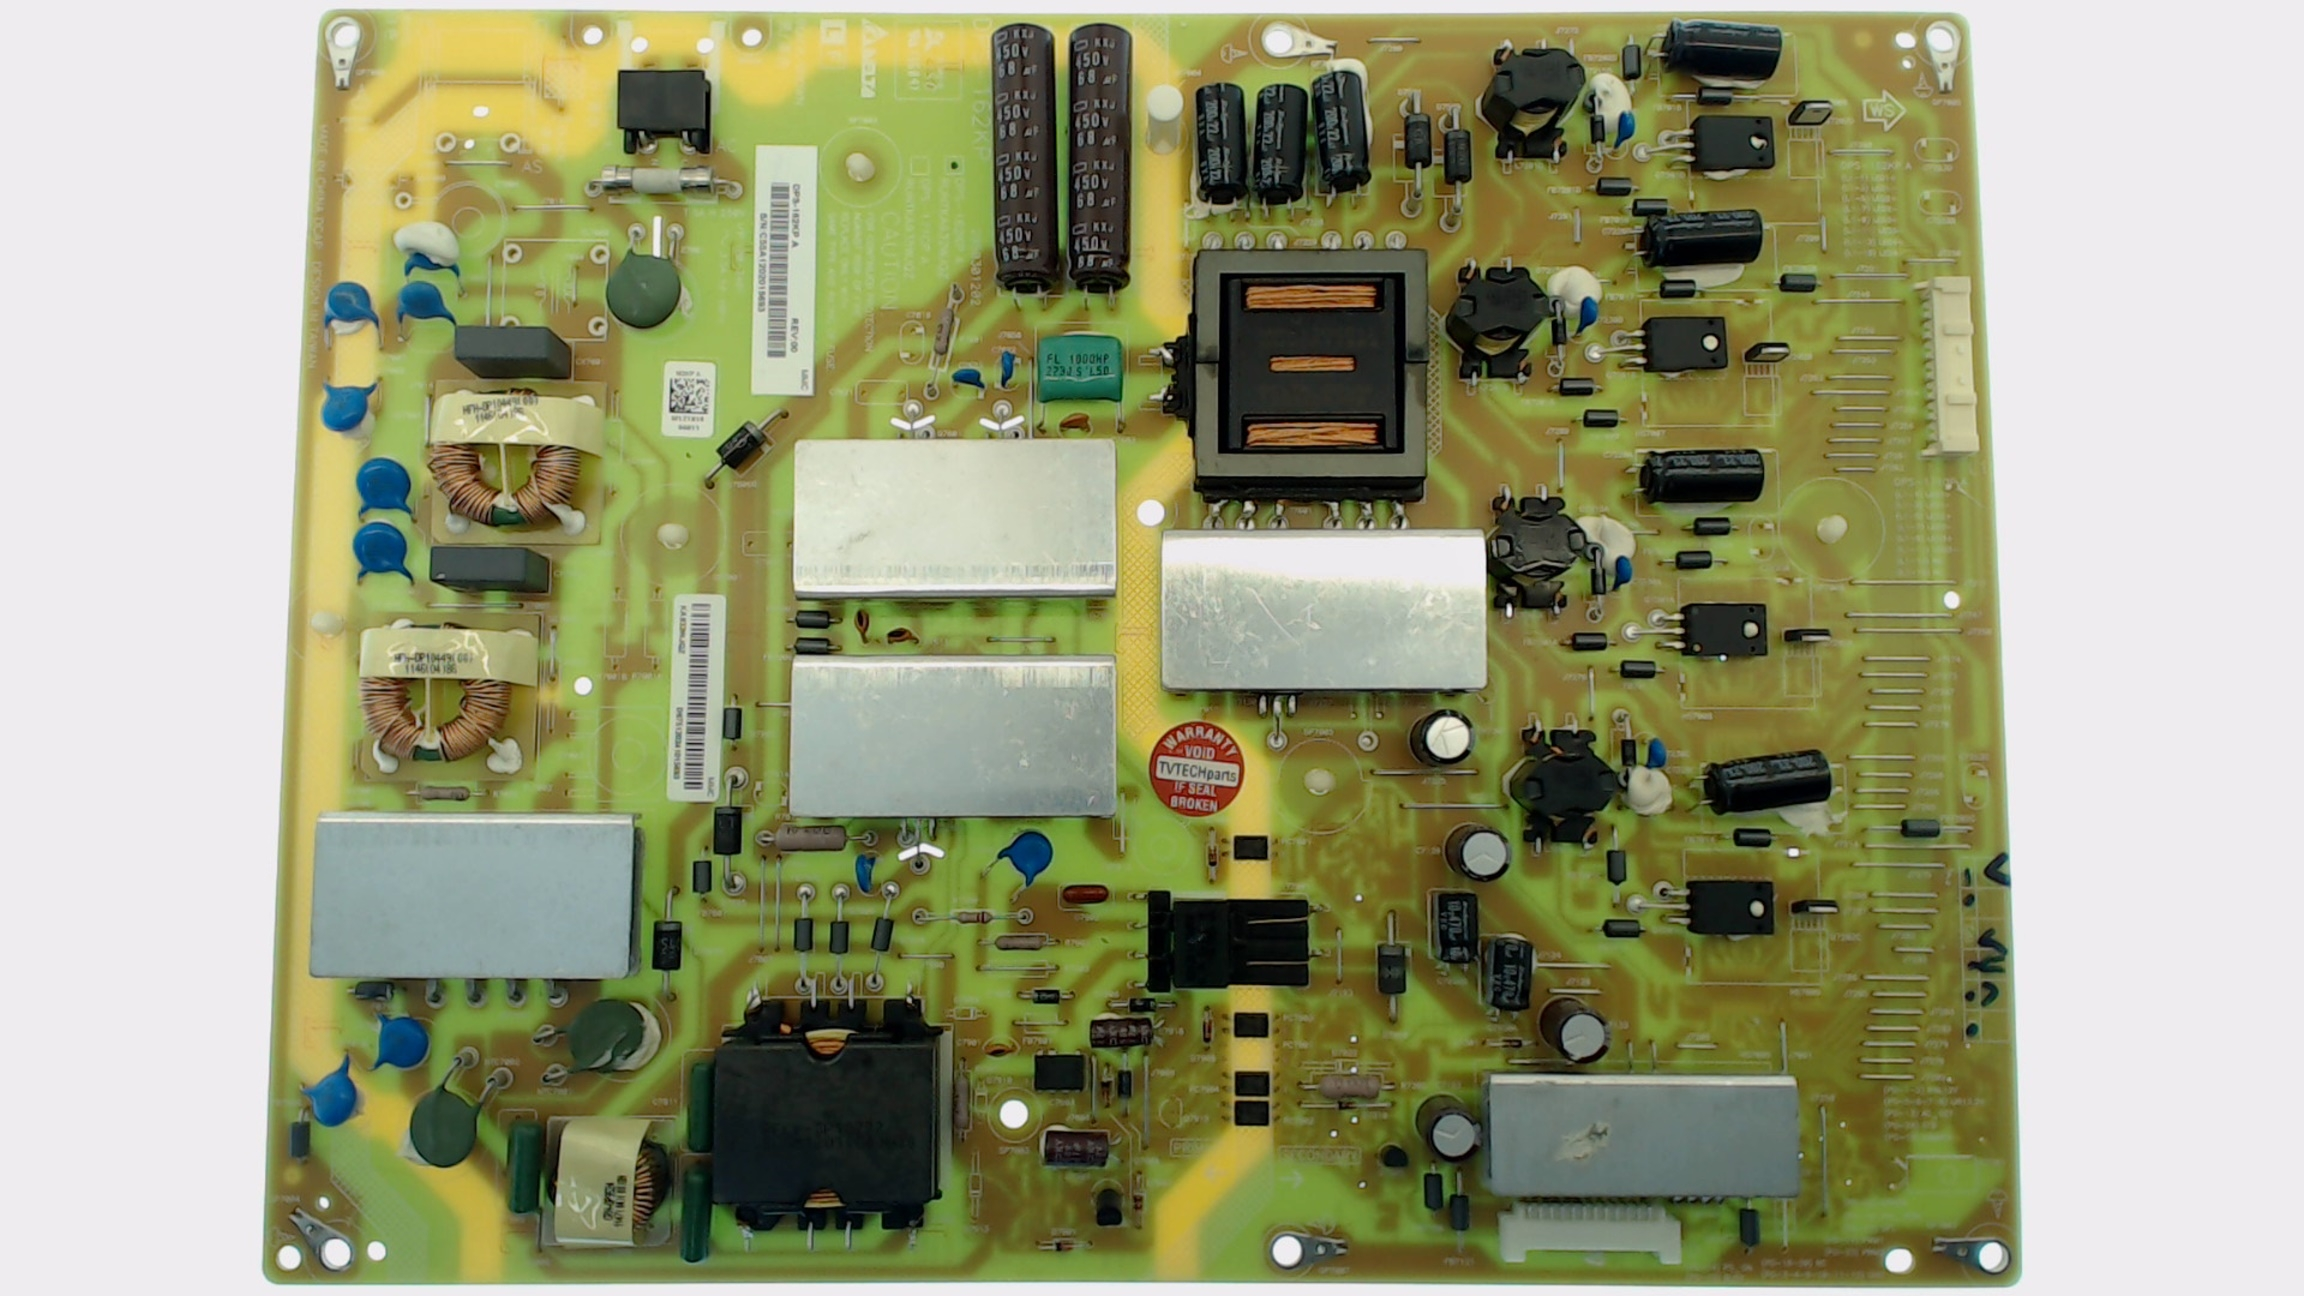 Sharp Tv Repair Parts Control Panel Circuit Diagram And List For Microwaveparts Model Lc 60le640u Power Supply Board Part Number Runtka932wjqz Rh Tvtechparts Com Lcd Replacement Aquos Spare